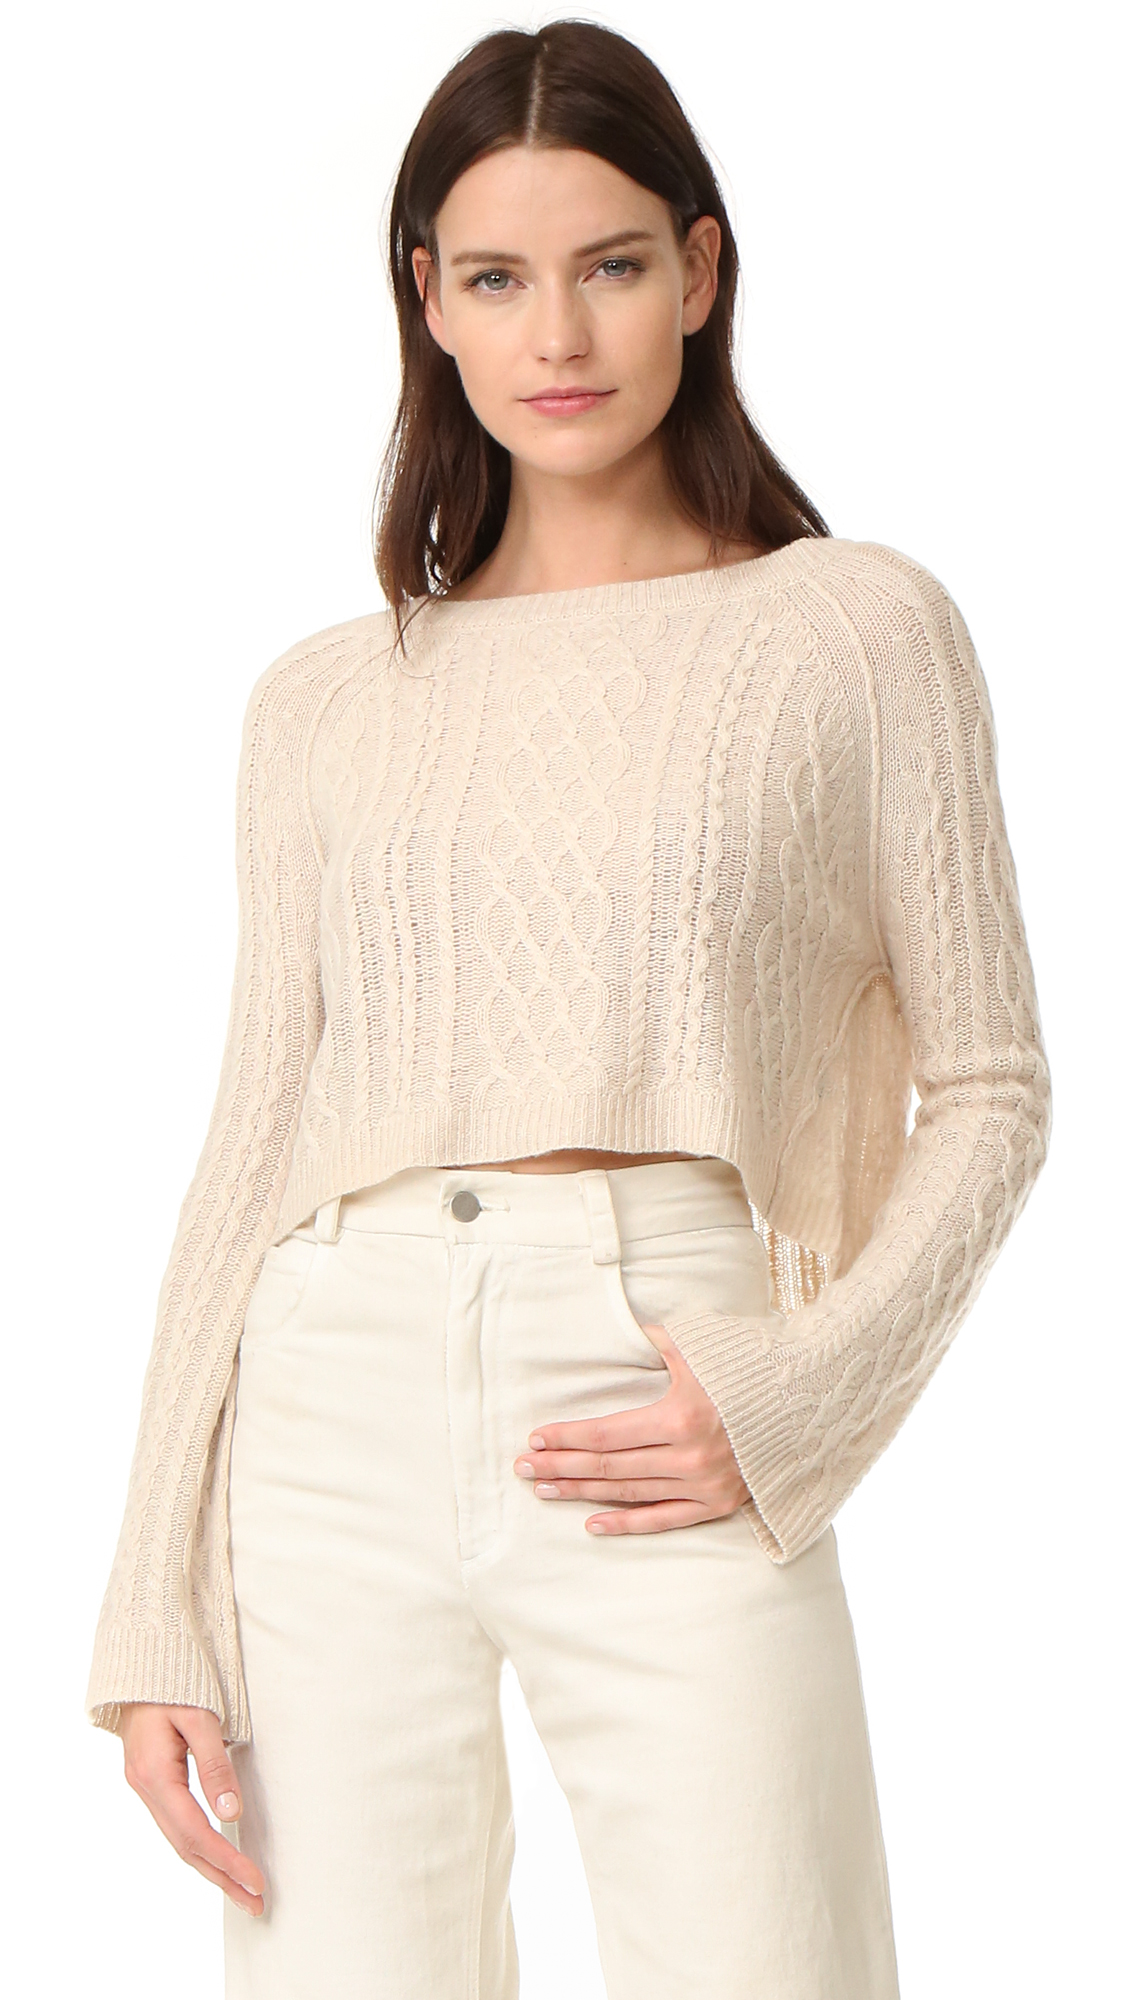 A cropped ThePerfext sweater in a cozy cable knit. Wide neckline. Long sleeves. Fabric: Soft cable knit. 100% cashmere. Dry clean. Imported, China. Measurements Length: 17.25in / 44cm, from shoulder Measurements from size S. Available sizes: L,M,